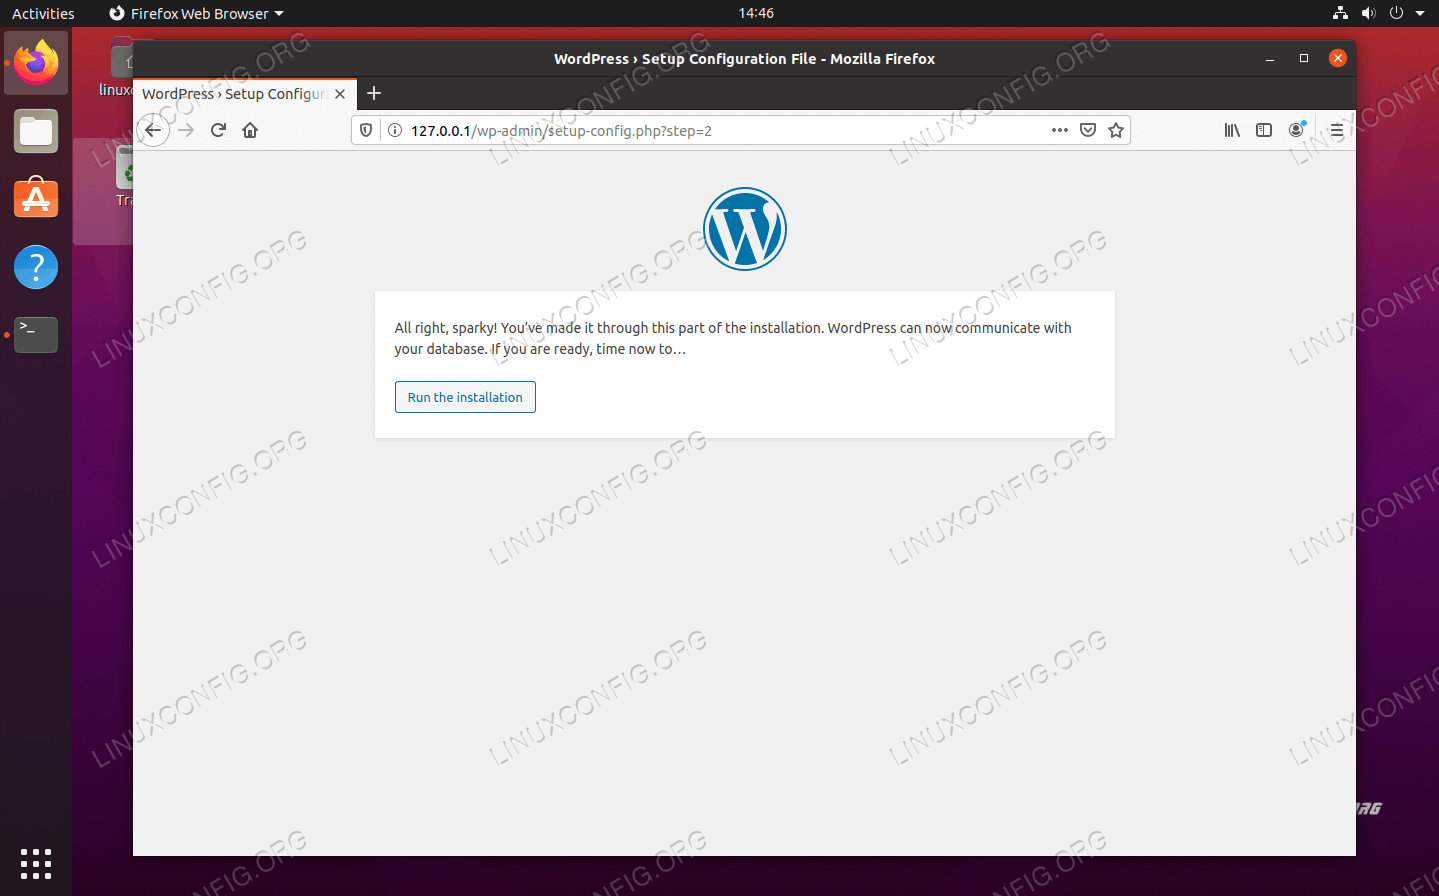 WordPress confirms that it can connect to the MySQL database